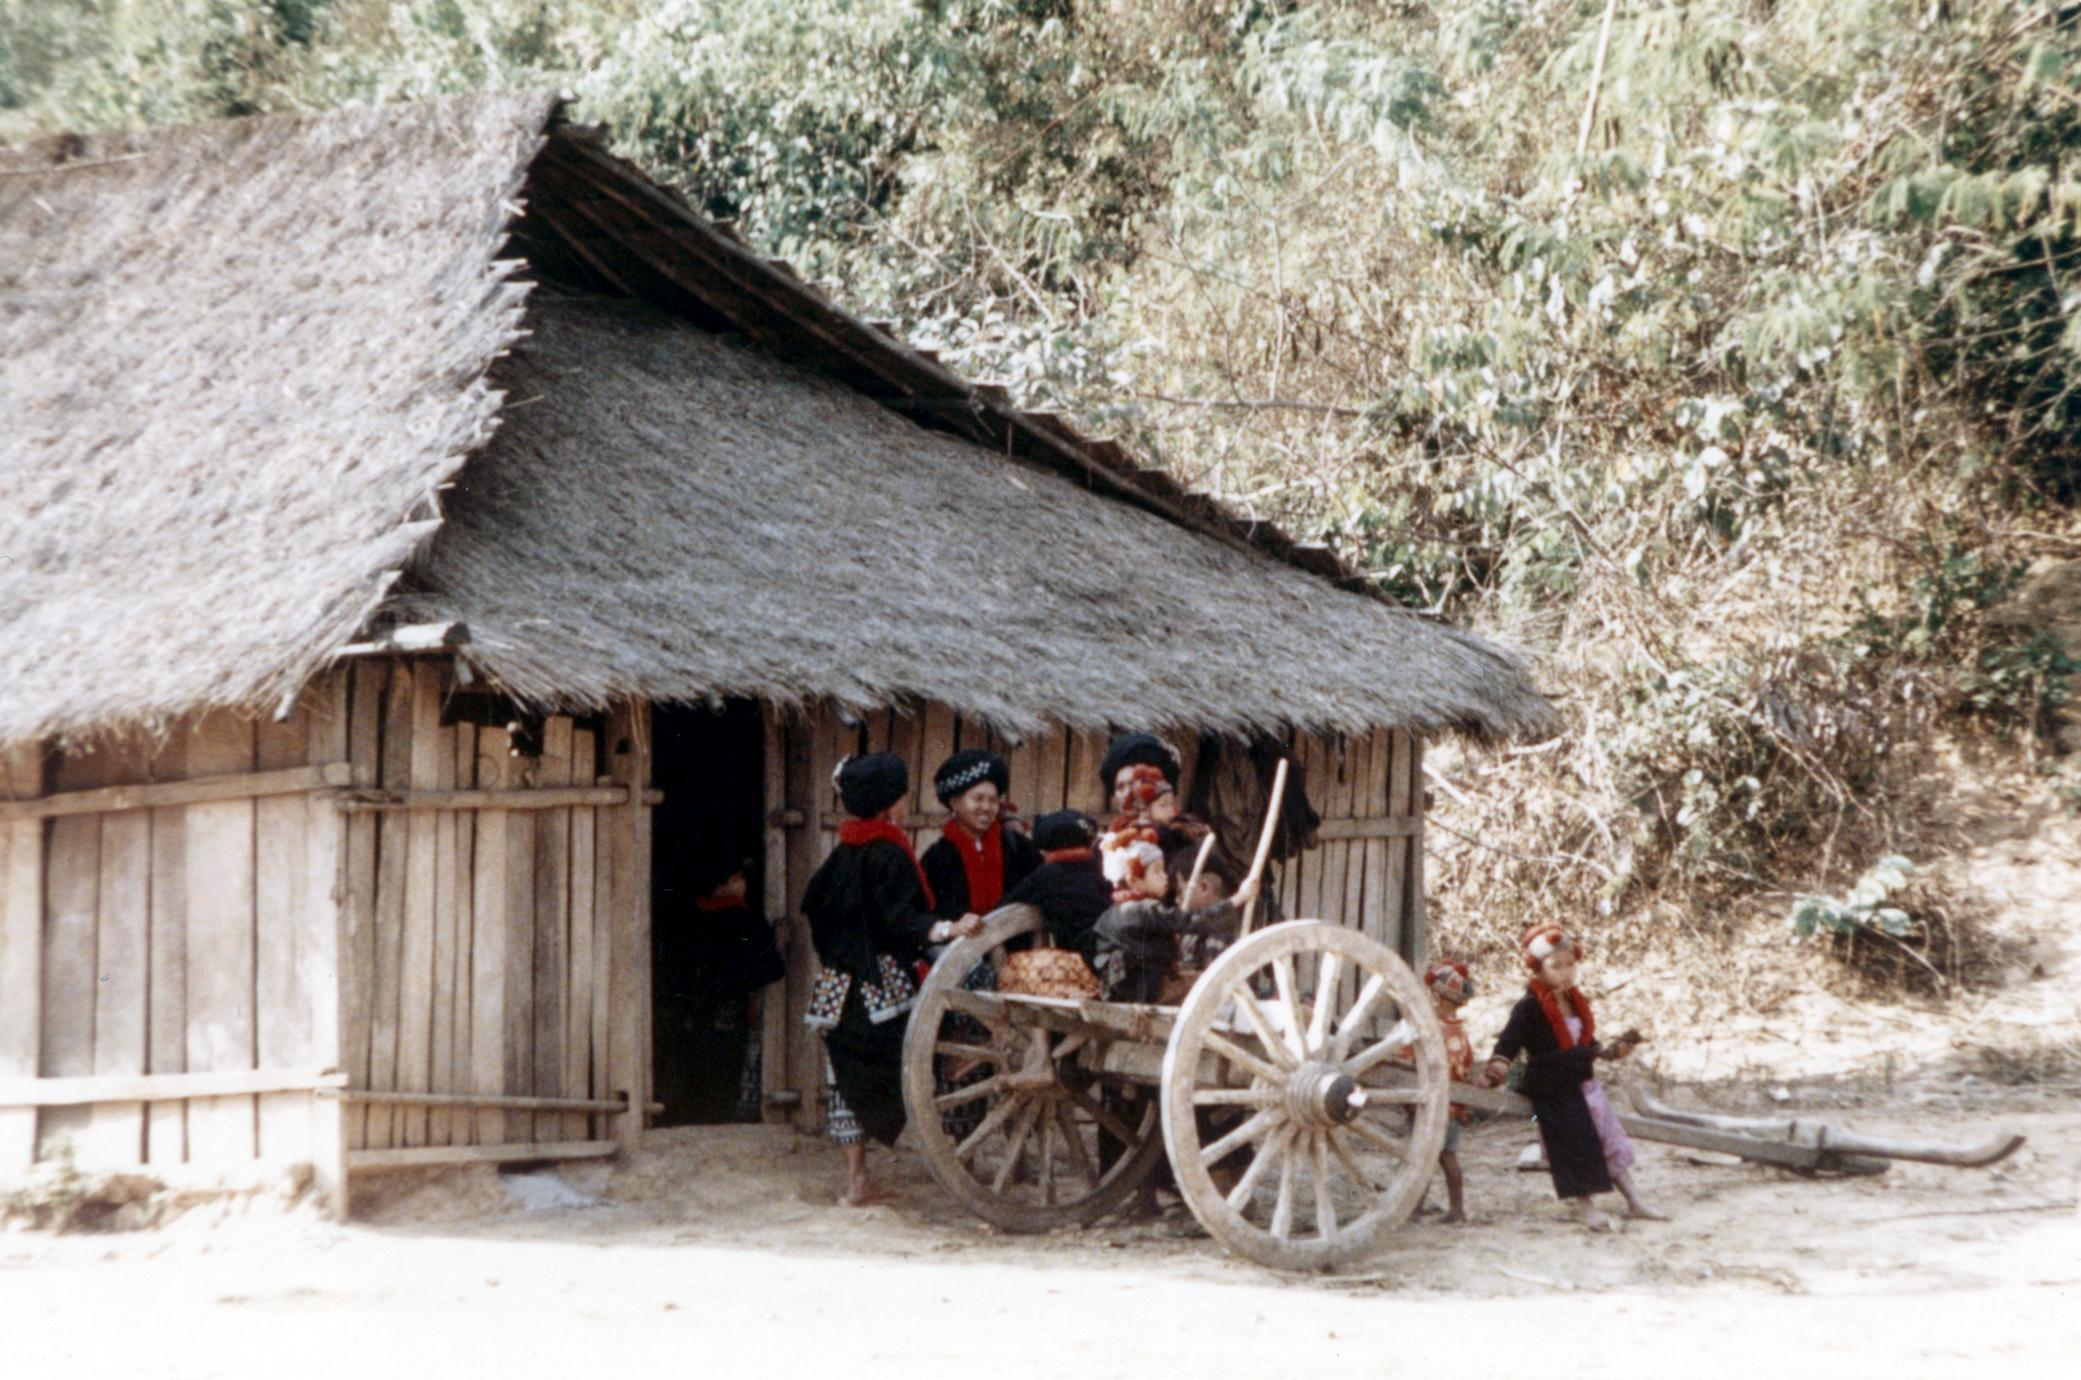 Yao (Iu Mien) village with ox cart in Houa Khong Province